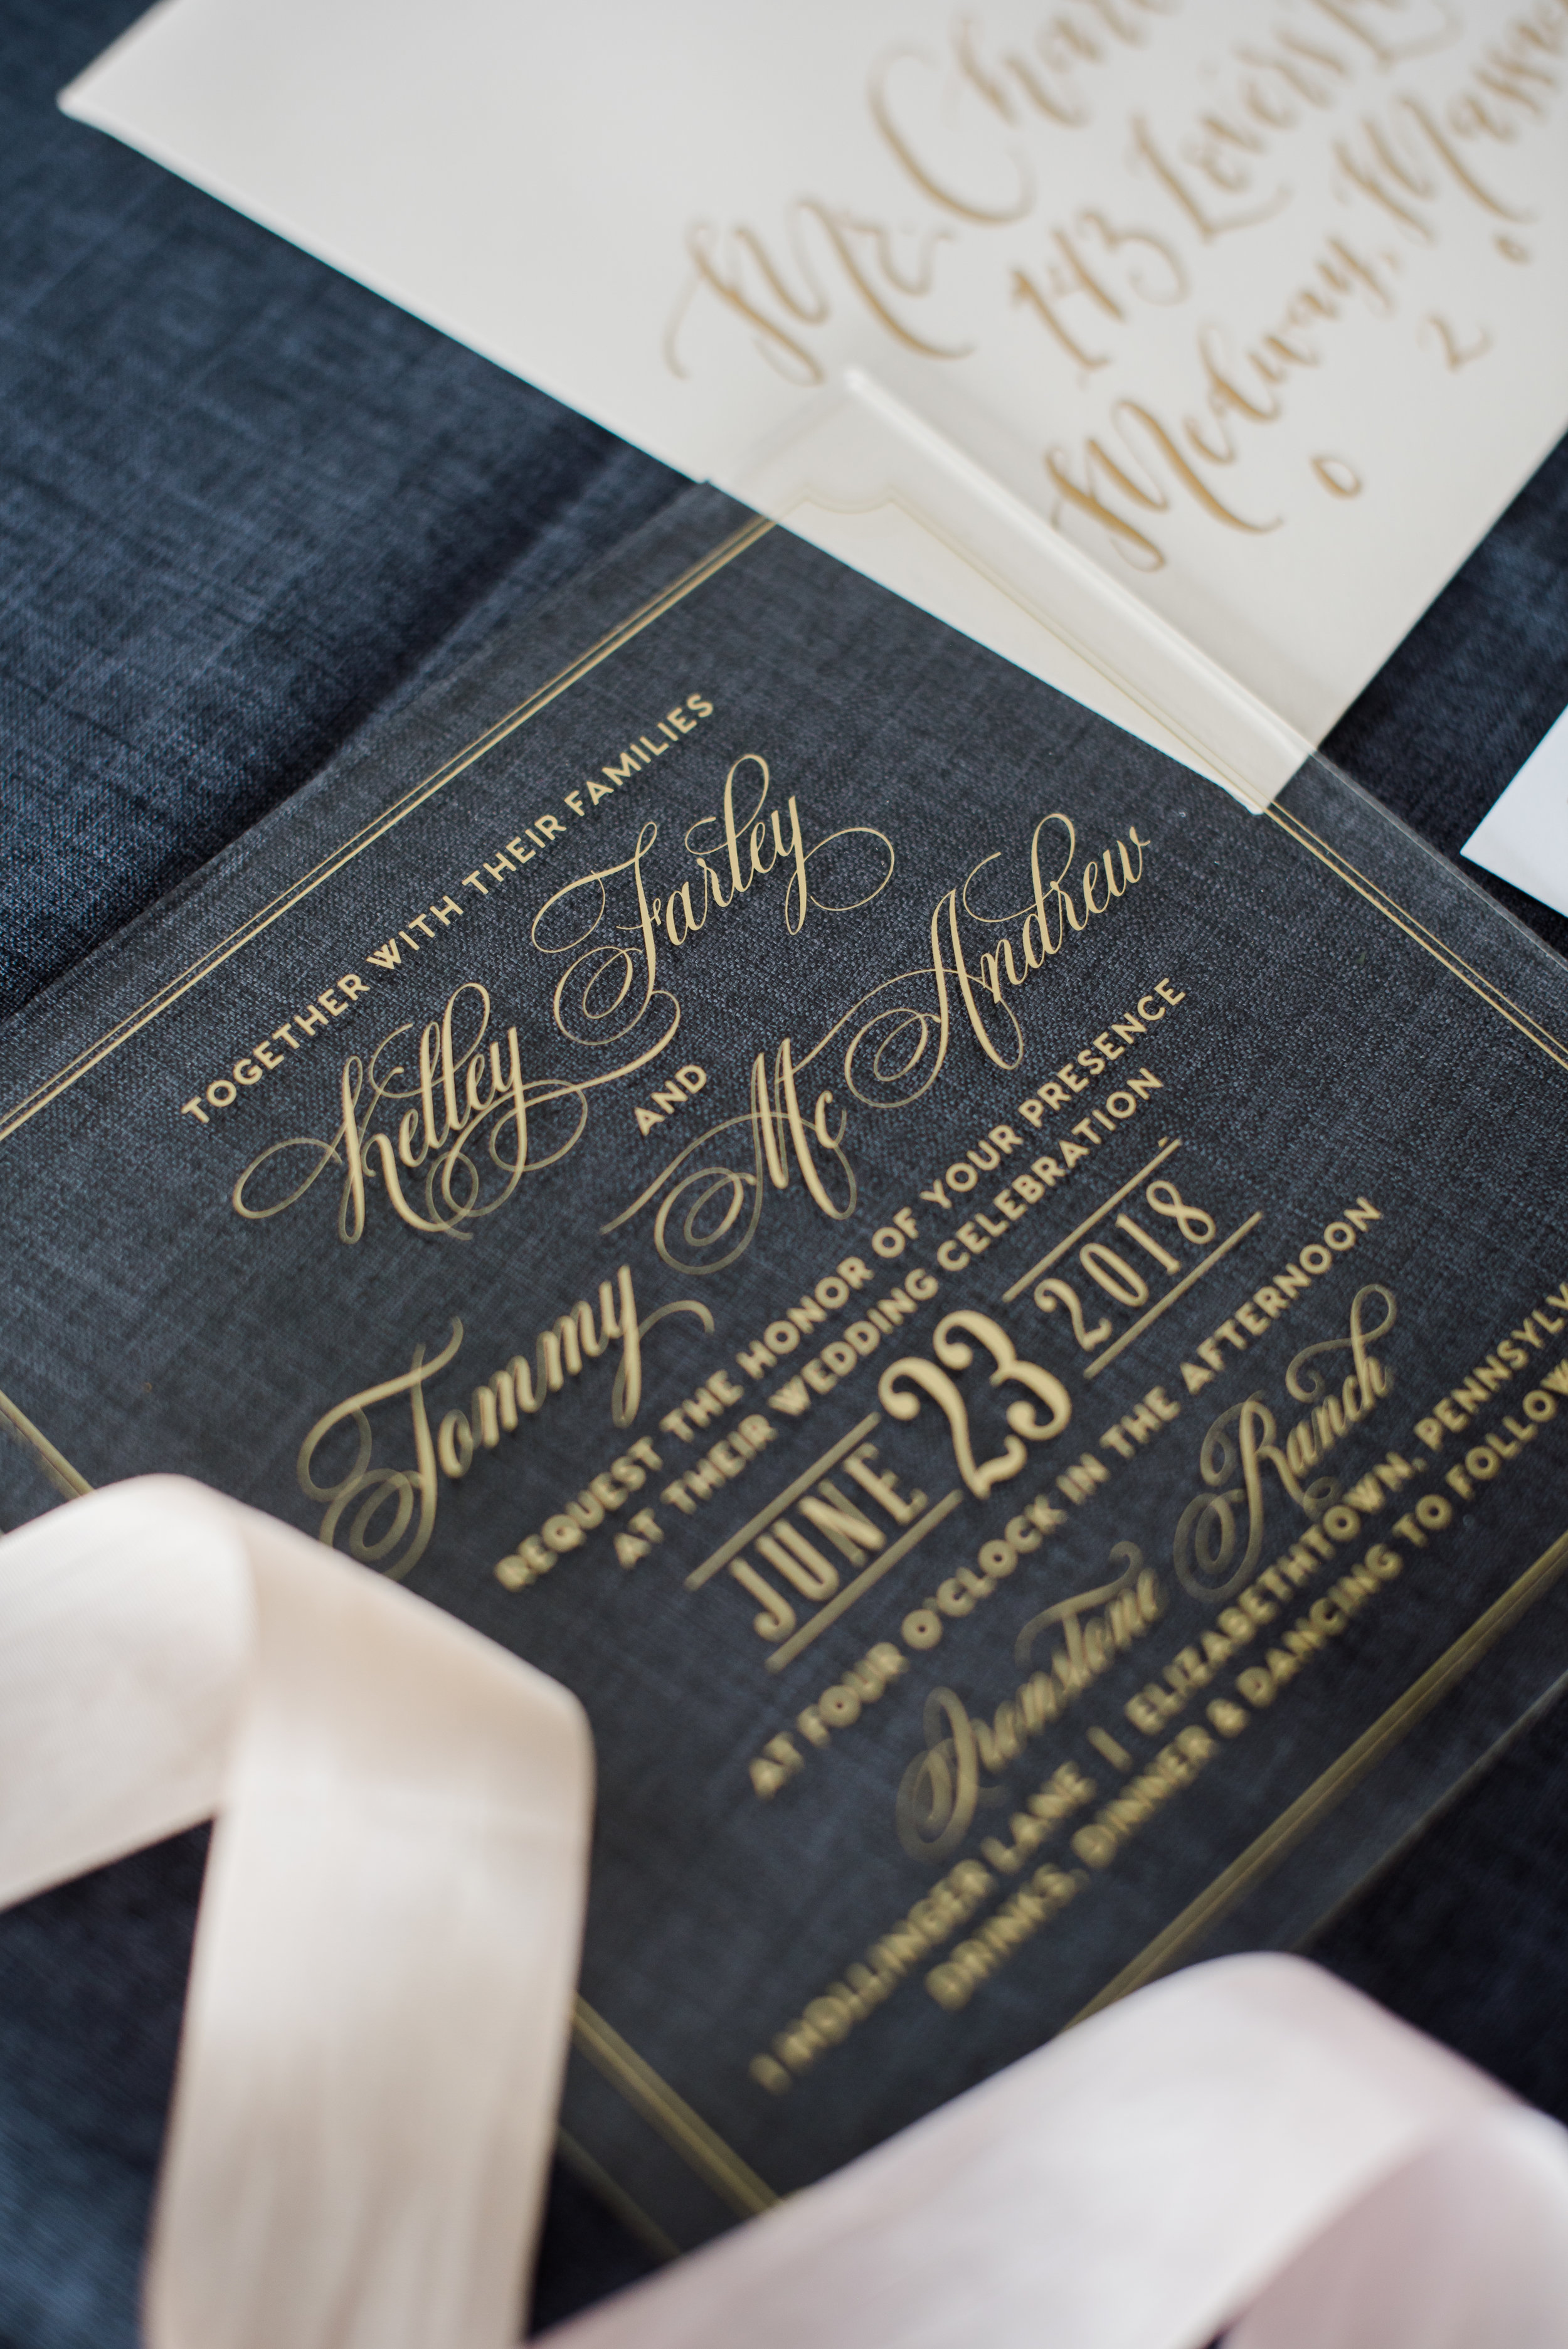 SQUARE ACRYLIC CLASSIC WEDDING INVITATIONS WITH GOLD FOIL DETAILS